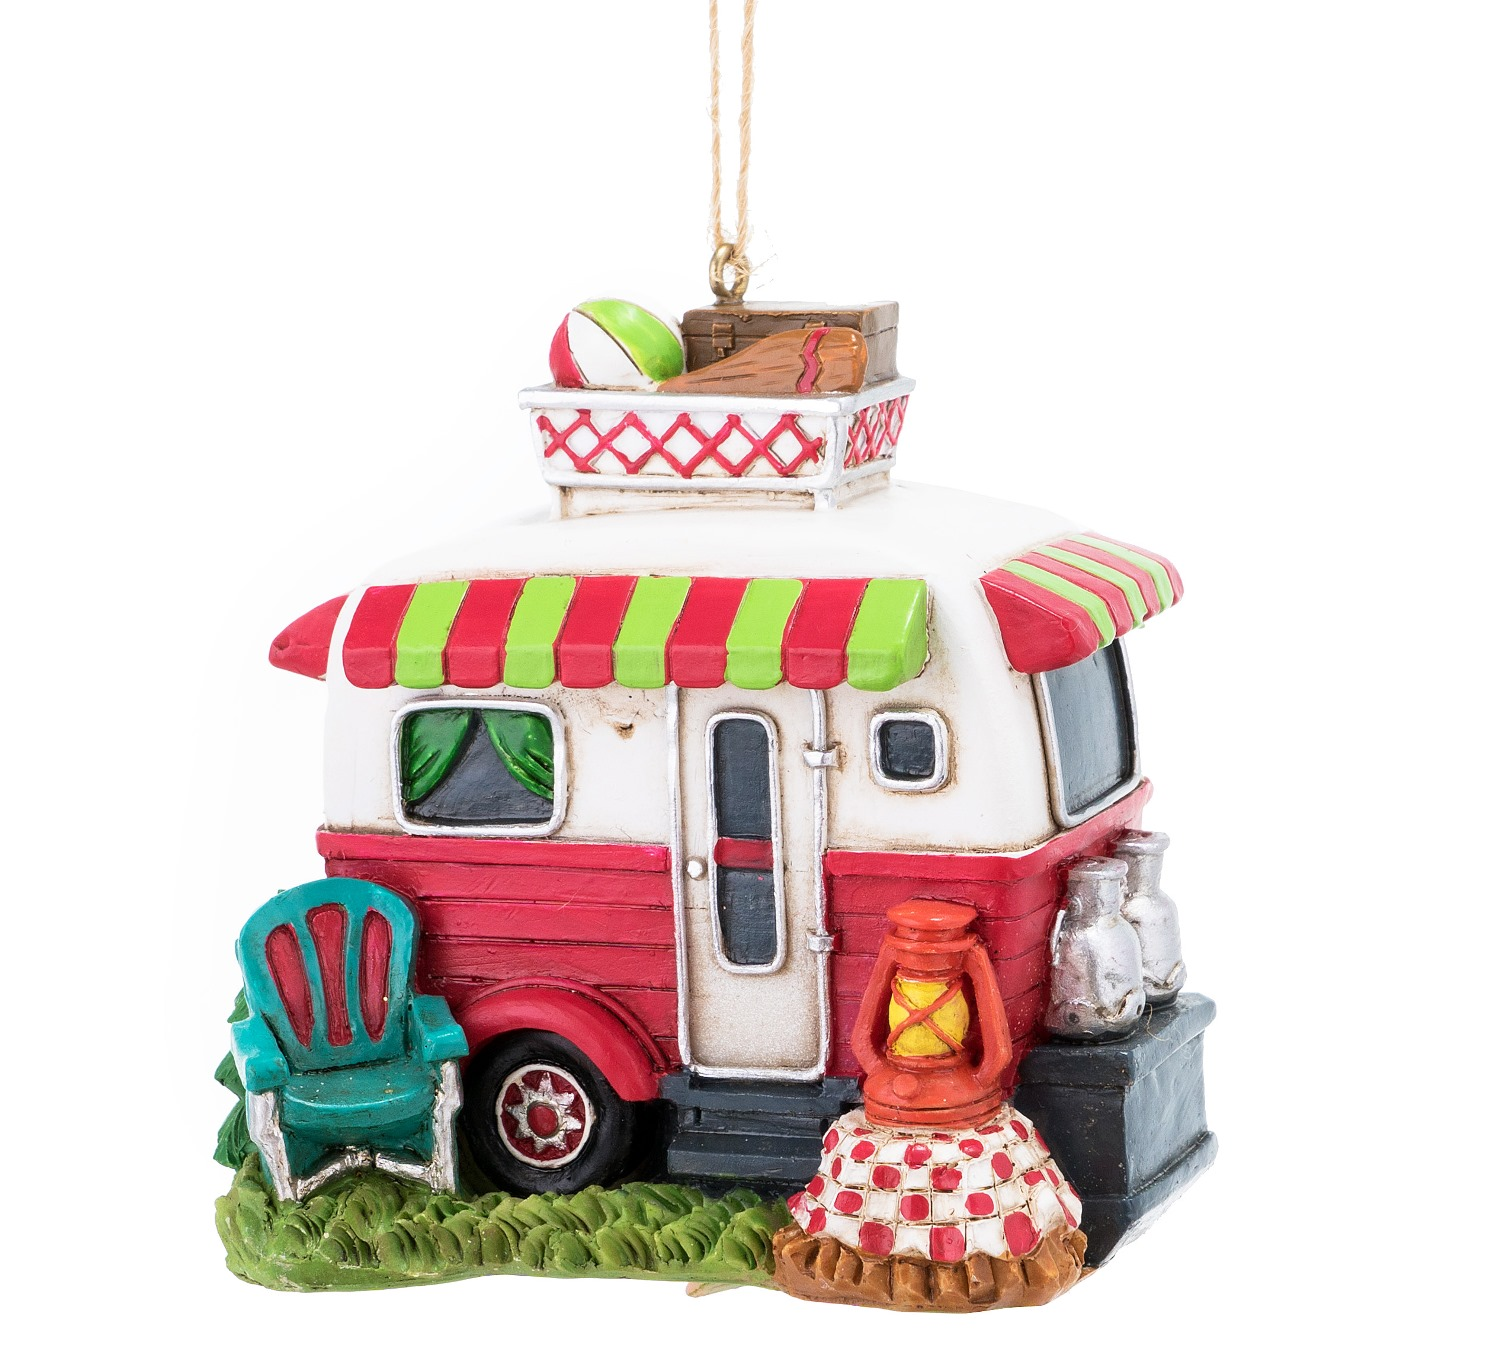 Travel Trailer Set Up at Campground Christmas Holiday Ornament 3 Inches